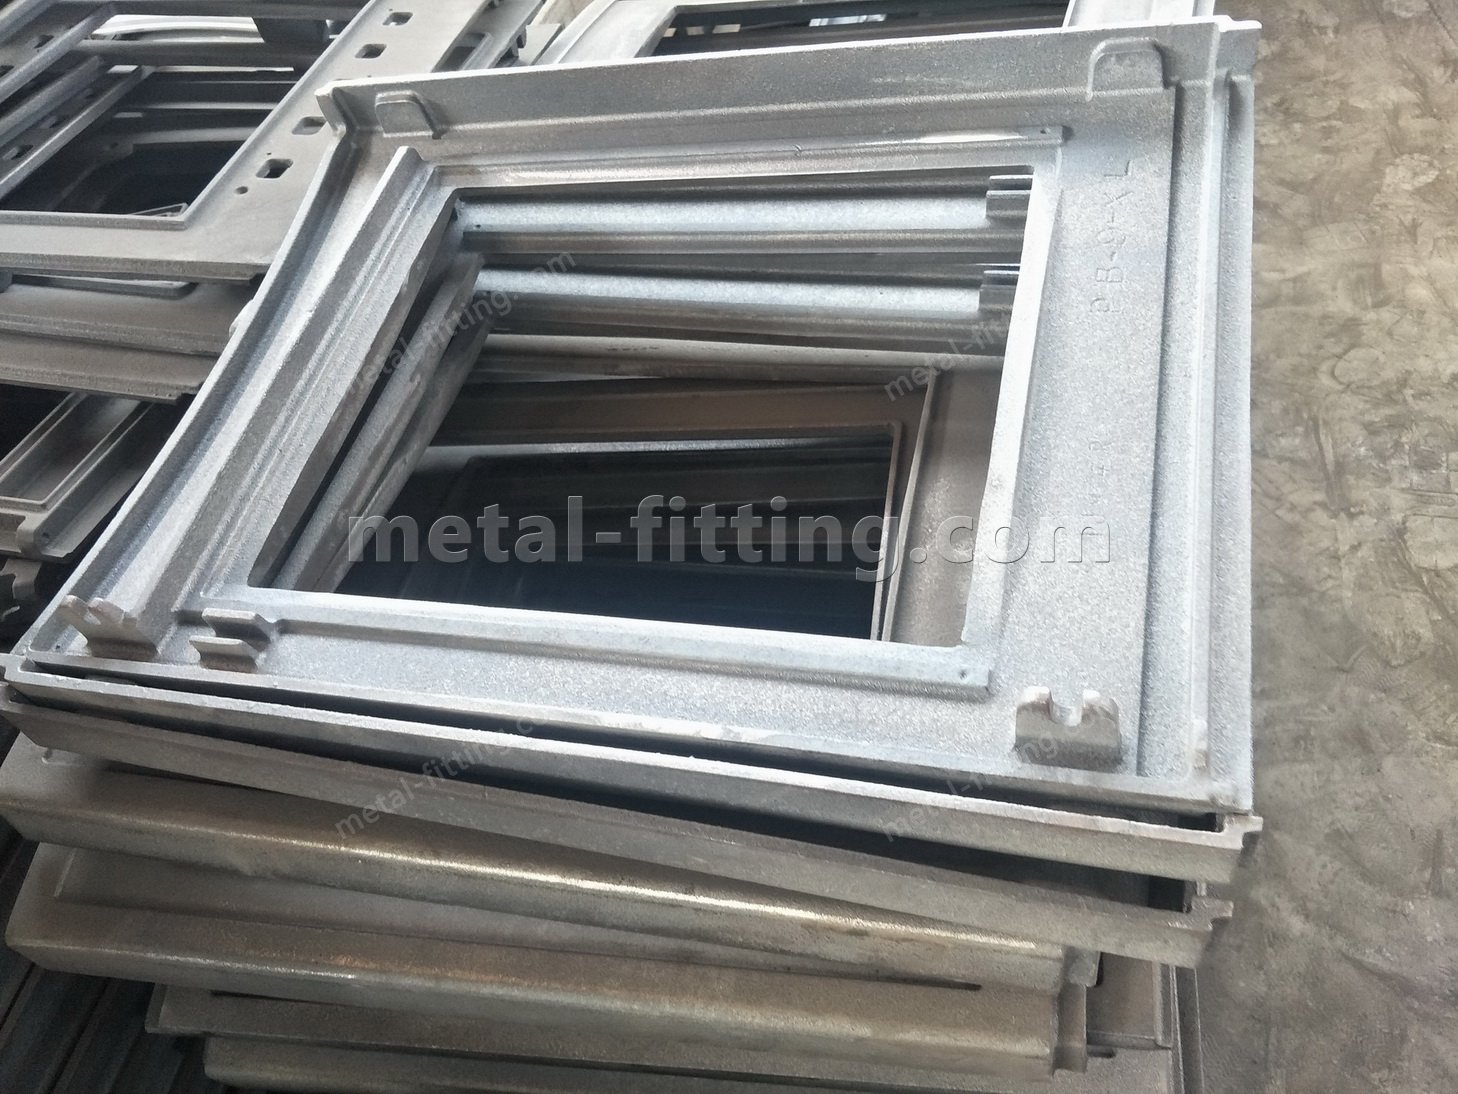 customization steel plate or other steel metal itemss-IMG20180726103015